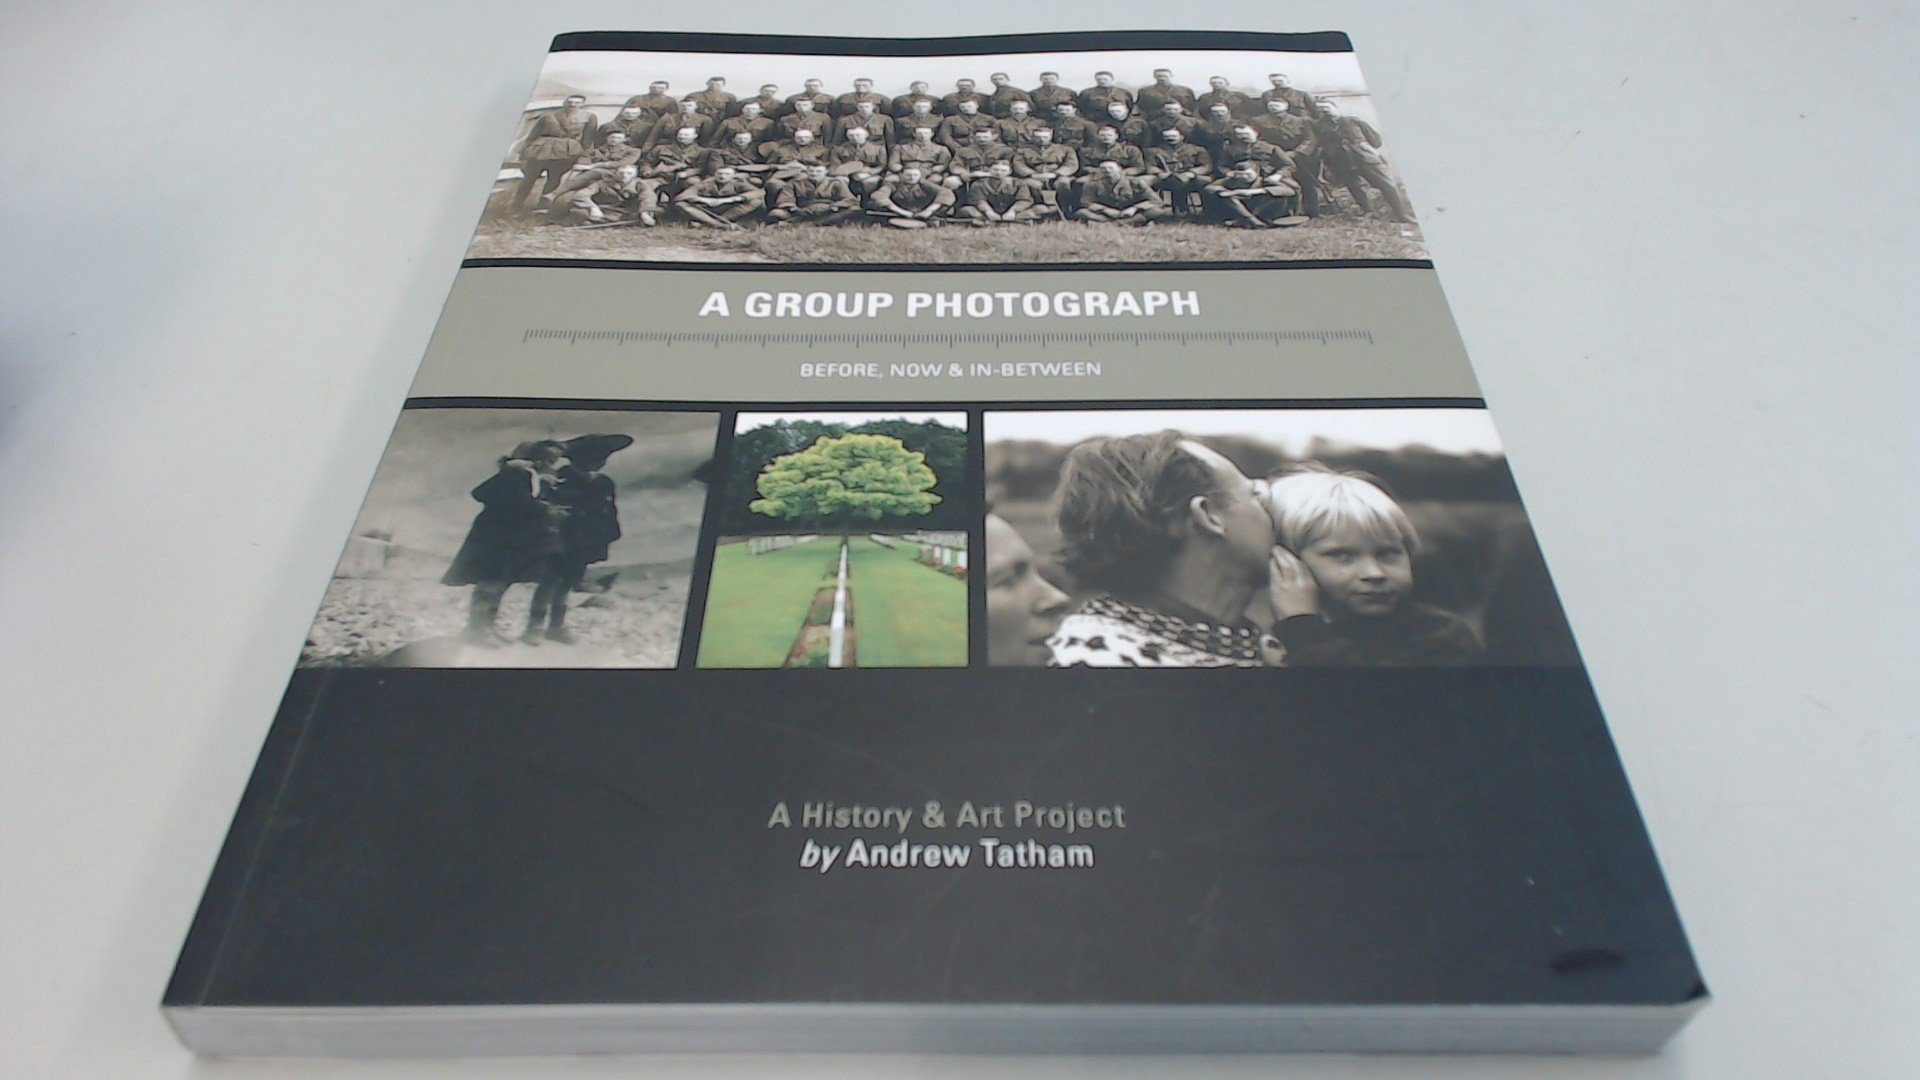 A Group Photograph - Before, Now & in-Between: A History & Art Project 2016 PDF